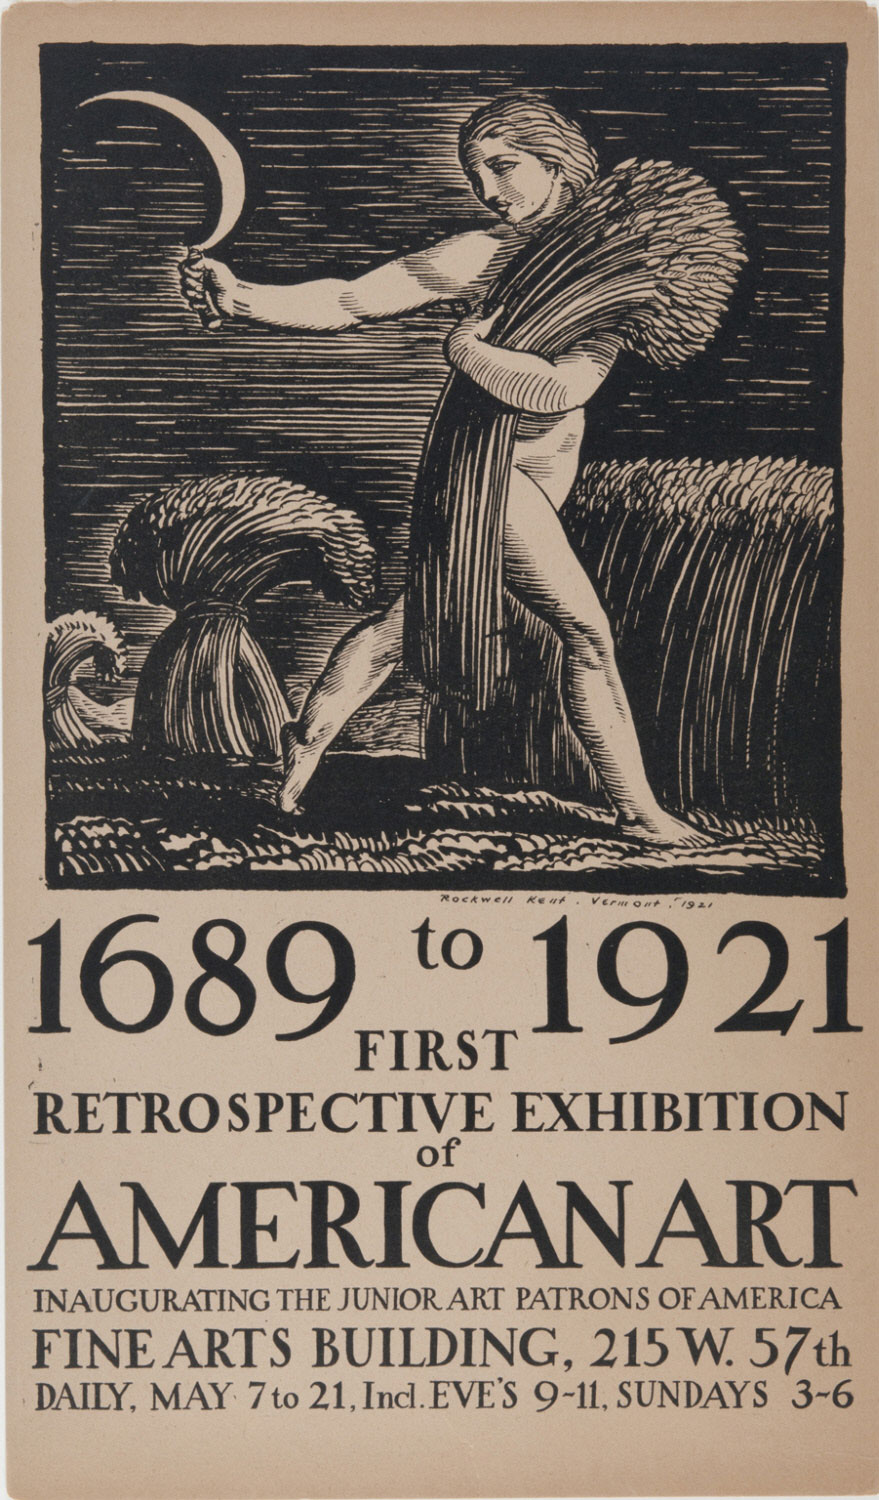 1689 to 1921: First Retrospective Exhibition of American Art